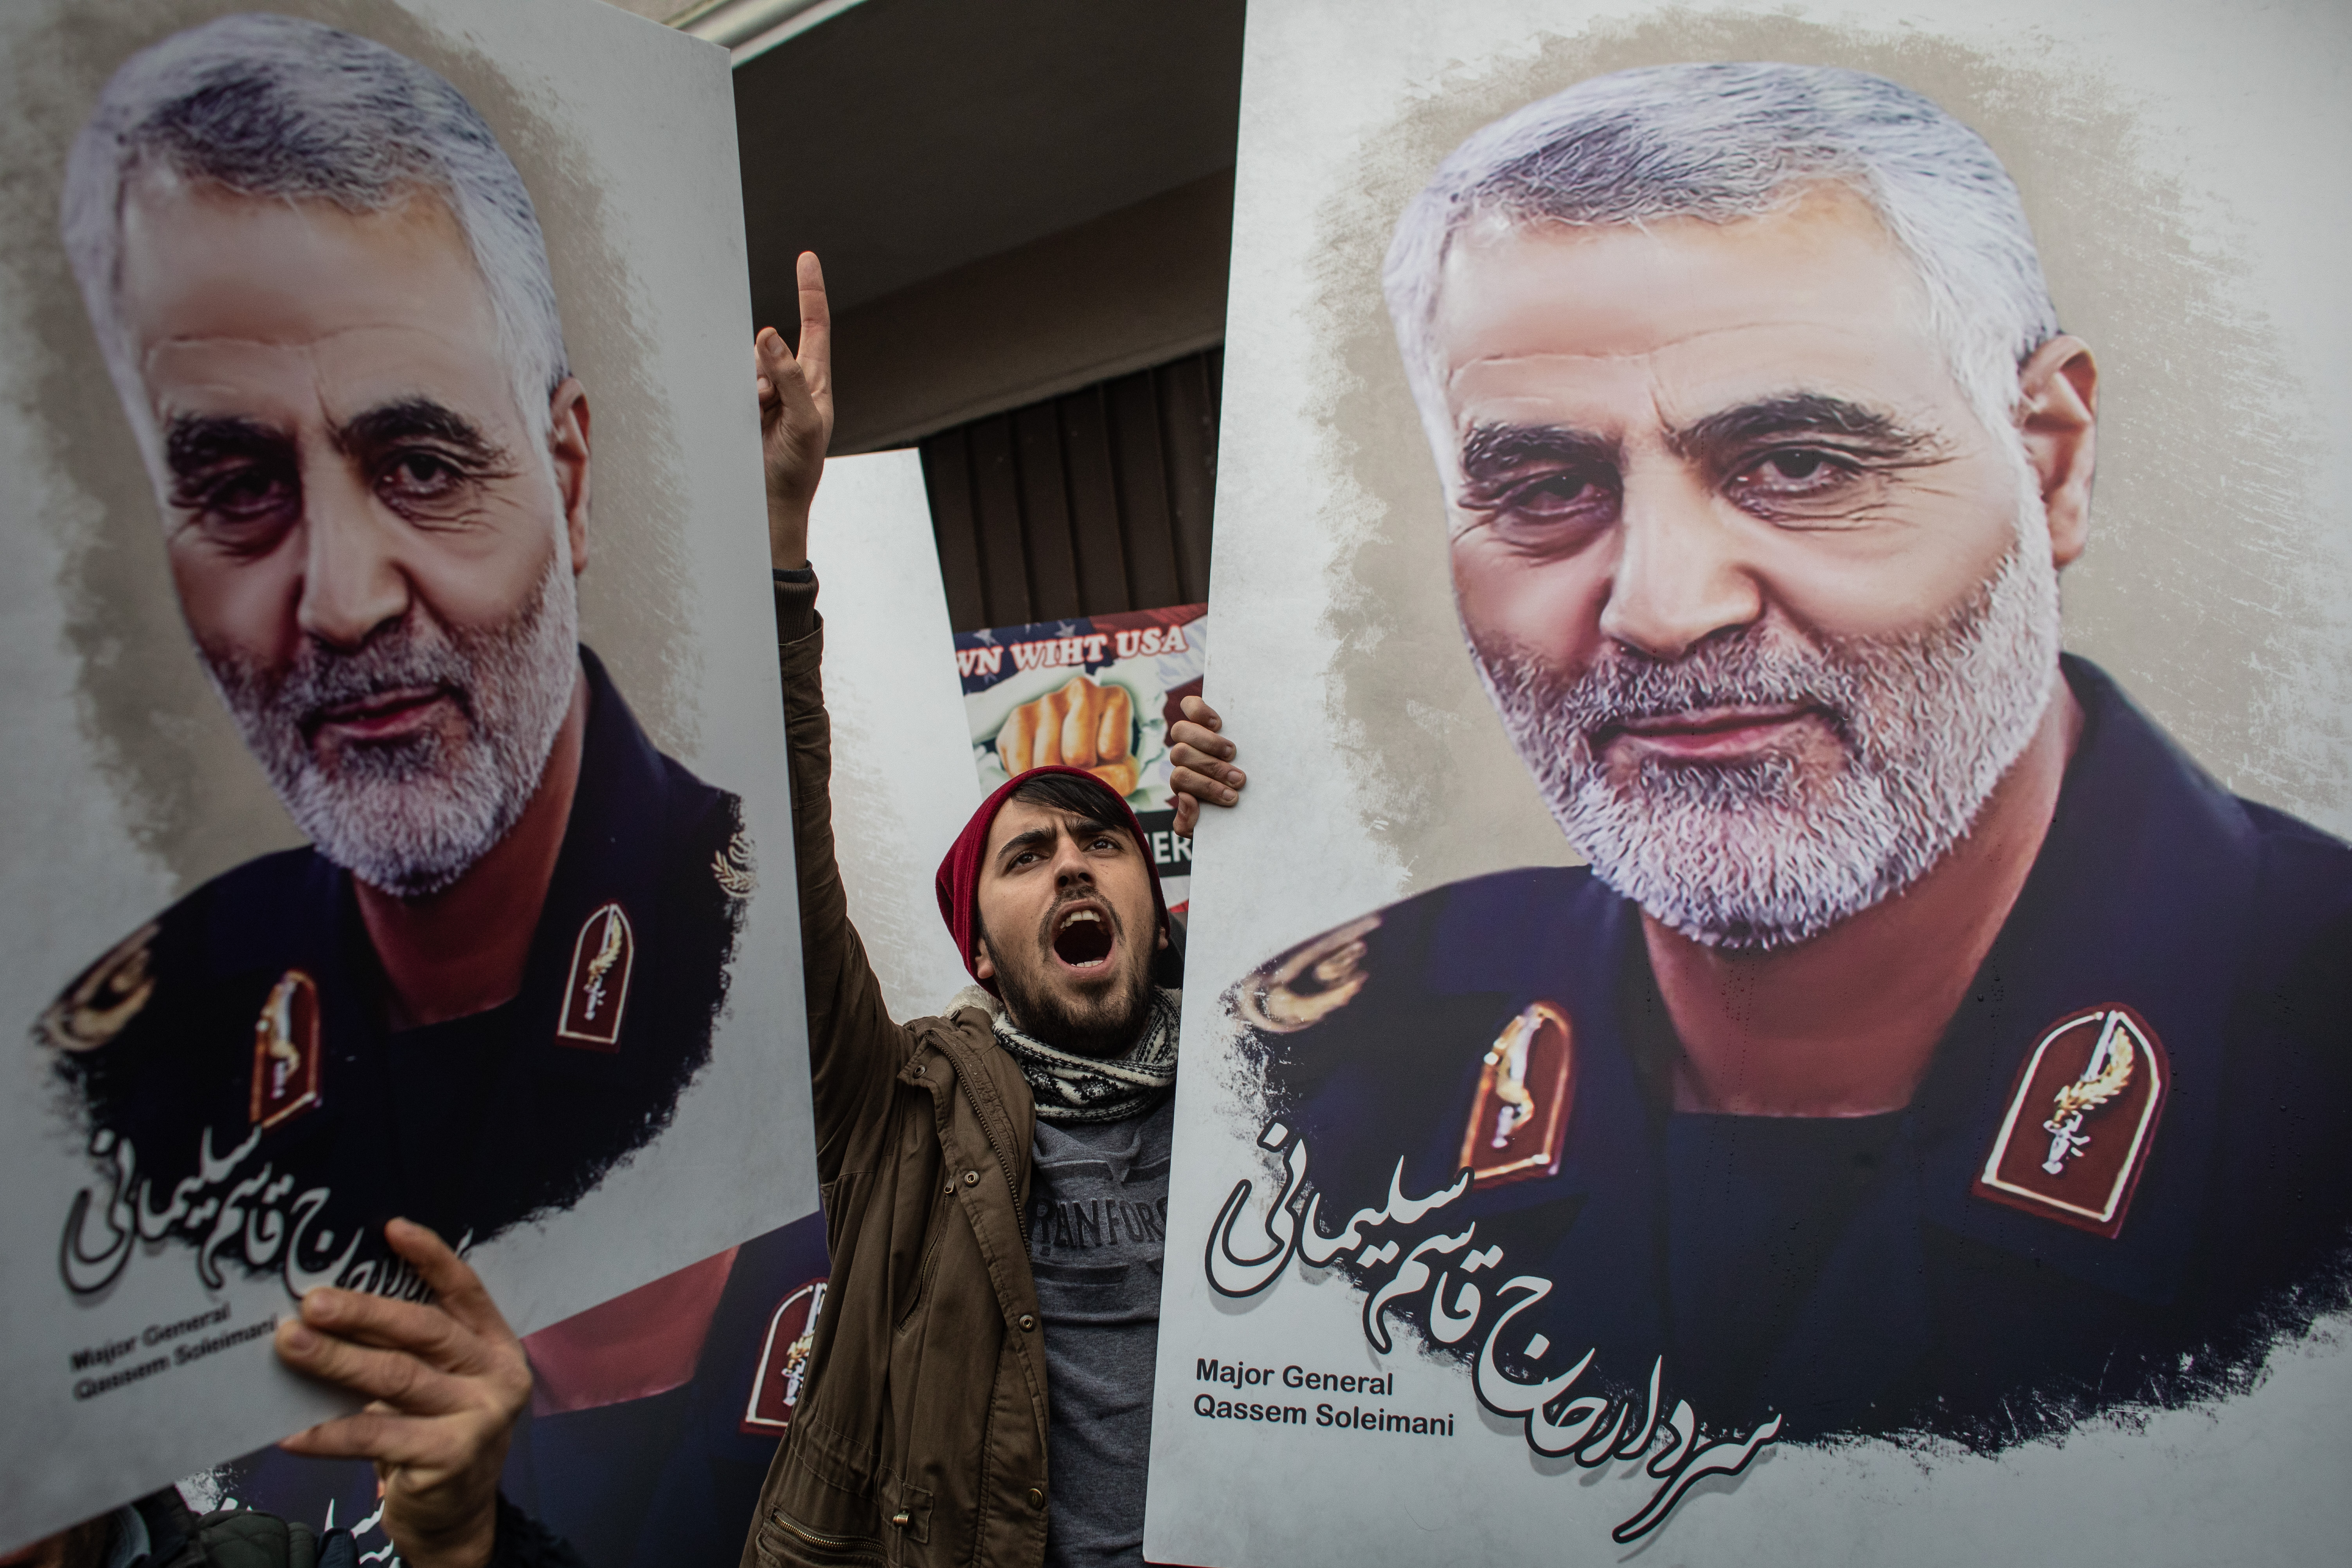 People hold posters showing the portrait of Iranian Revolutionary Guard Major General Qasem Soleimani and chant slogans during a protest outside the US Consulate on Jan. 5 in Istanbul, Turkey.